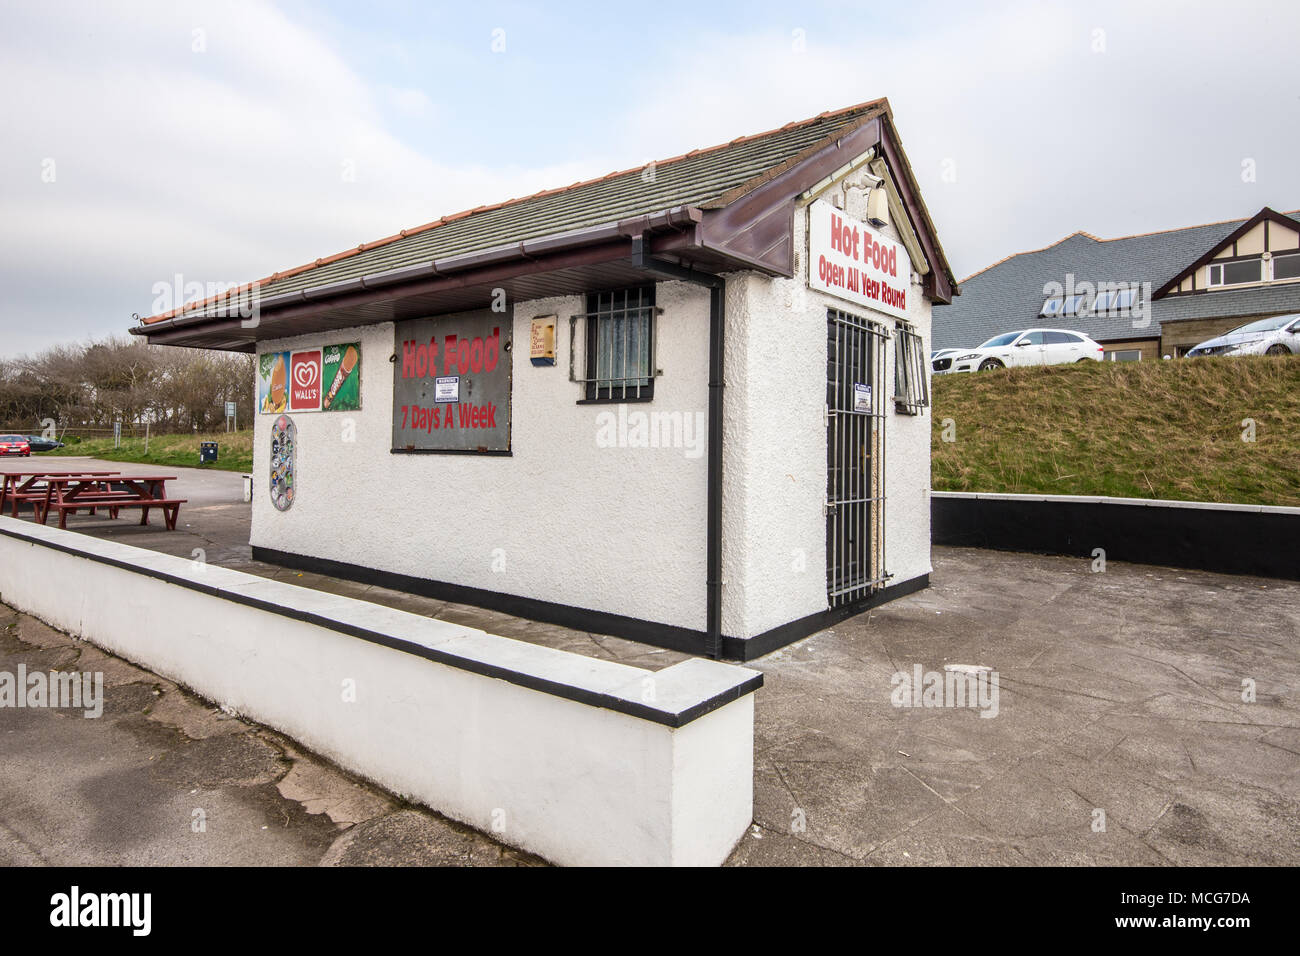 Small building used as a Hot food outlet claiming to be open all year round and 7 days a week.   Taken at Morecambe on 11 April 2018 - Stock Image